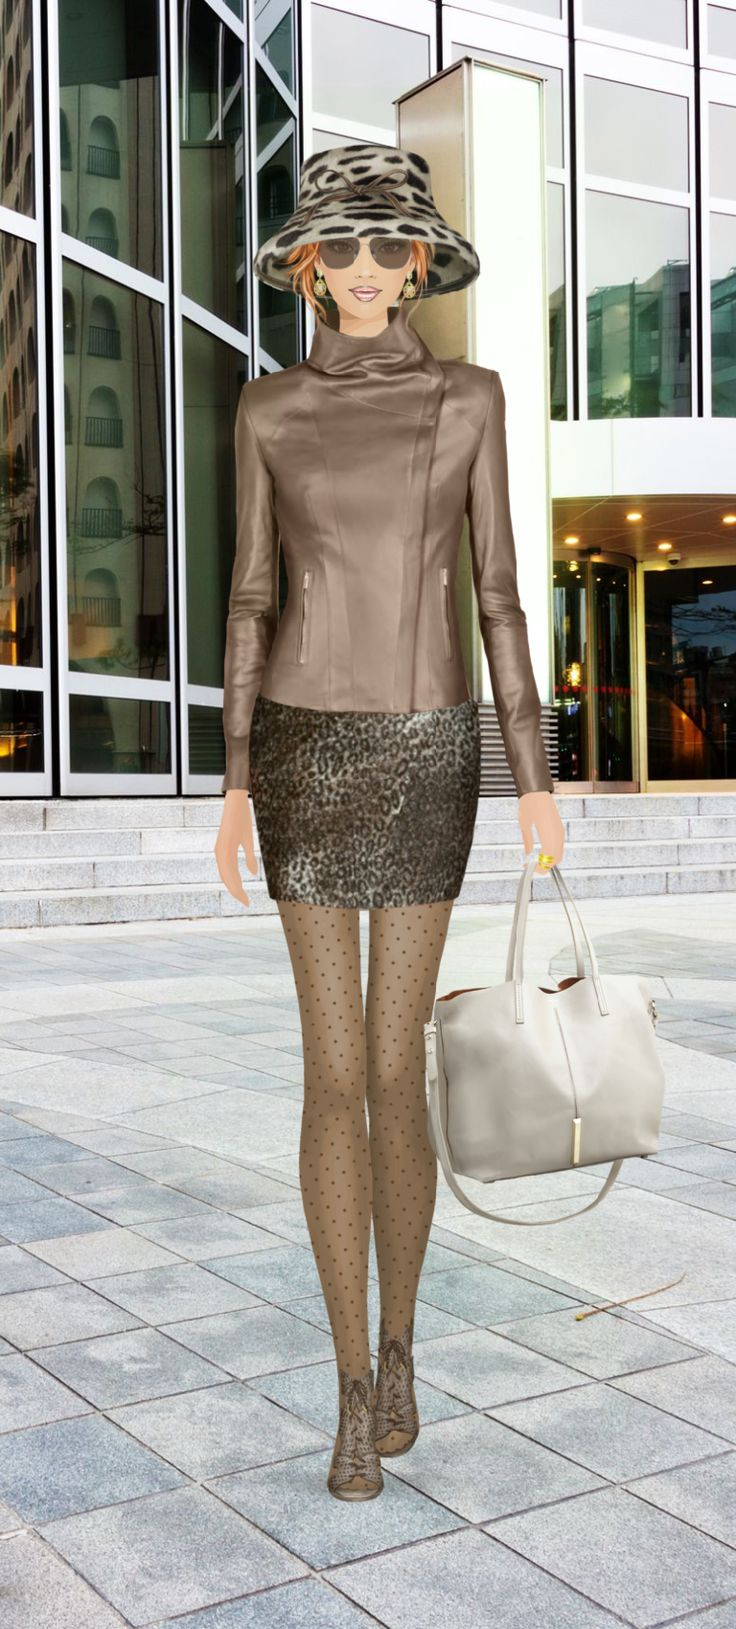 Fashion Game Choose Your Style My Look Fashion Game Pinterest Fashion Games